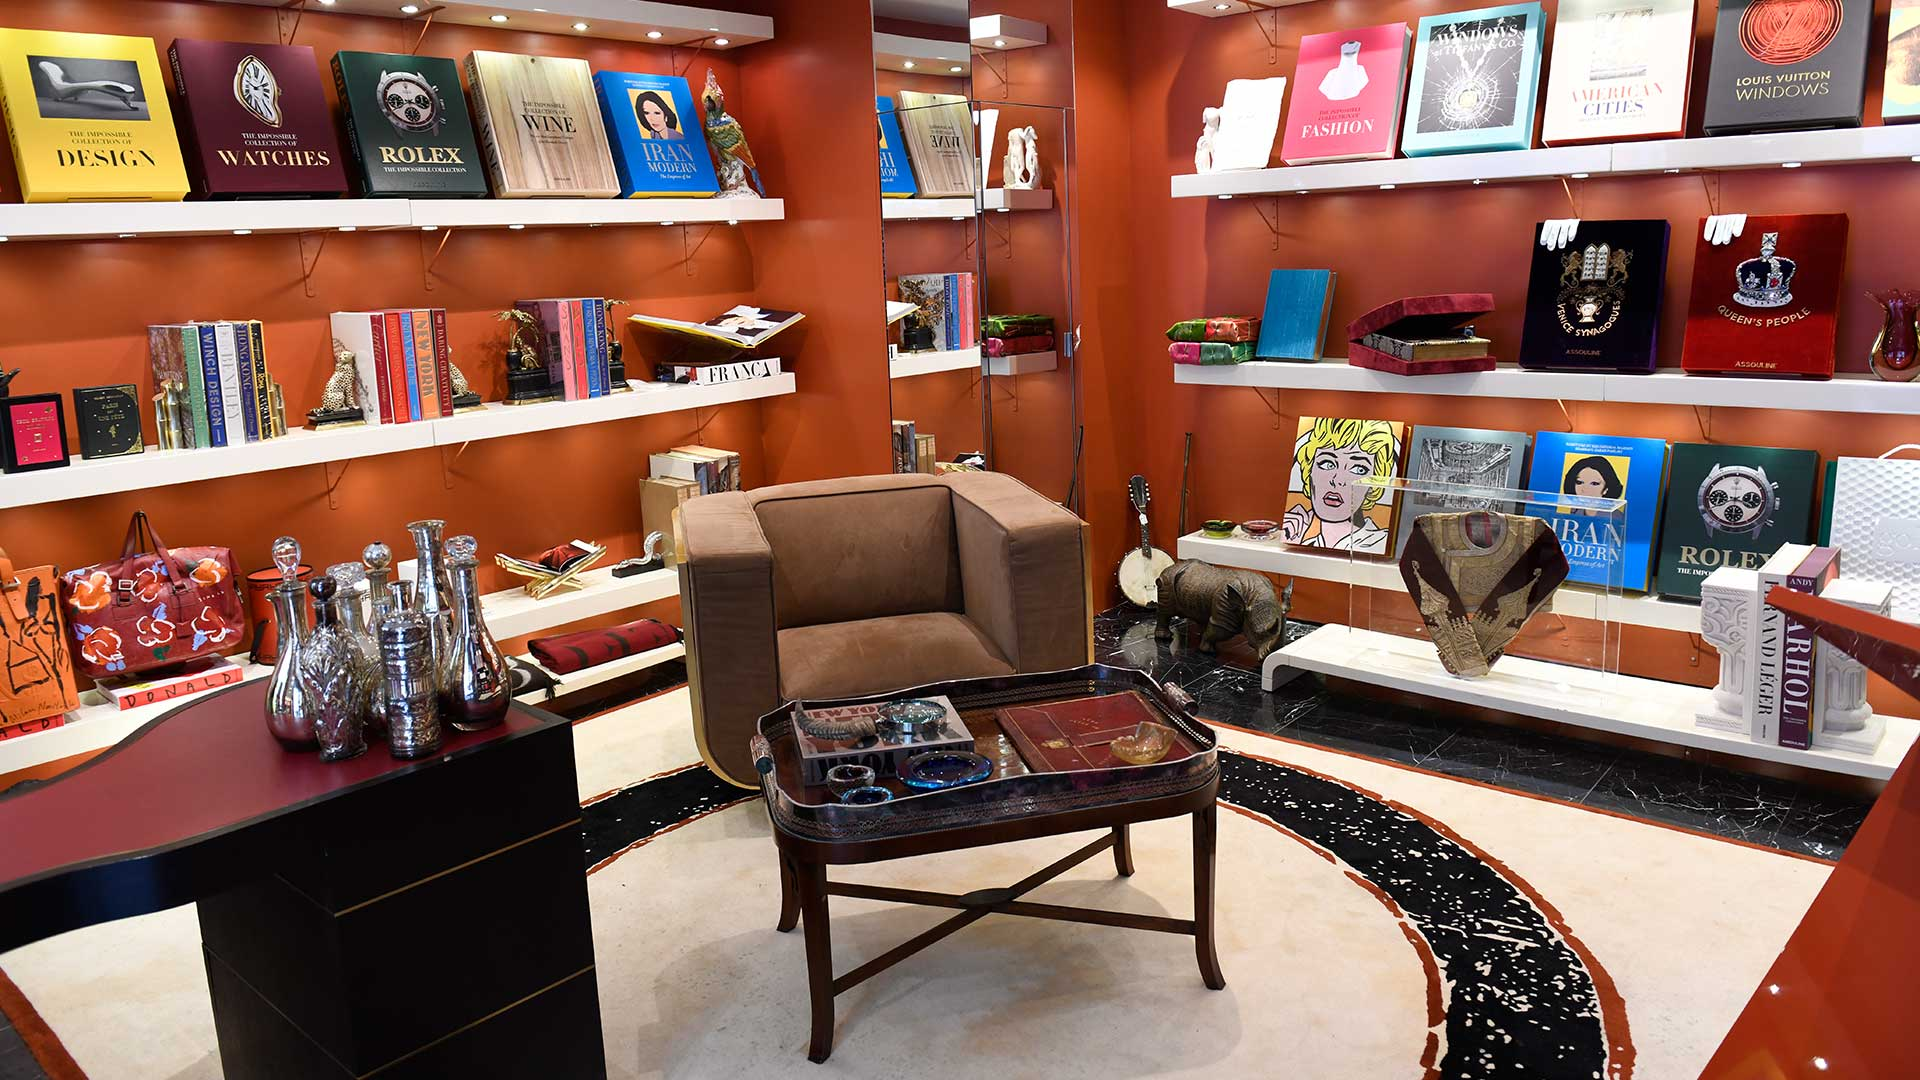 The inside of Assouline bookstore in New York City